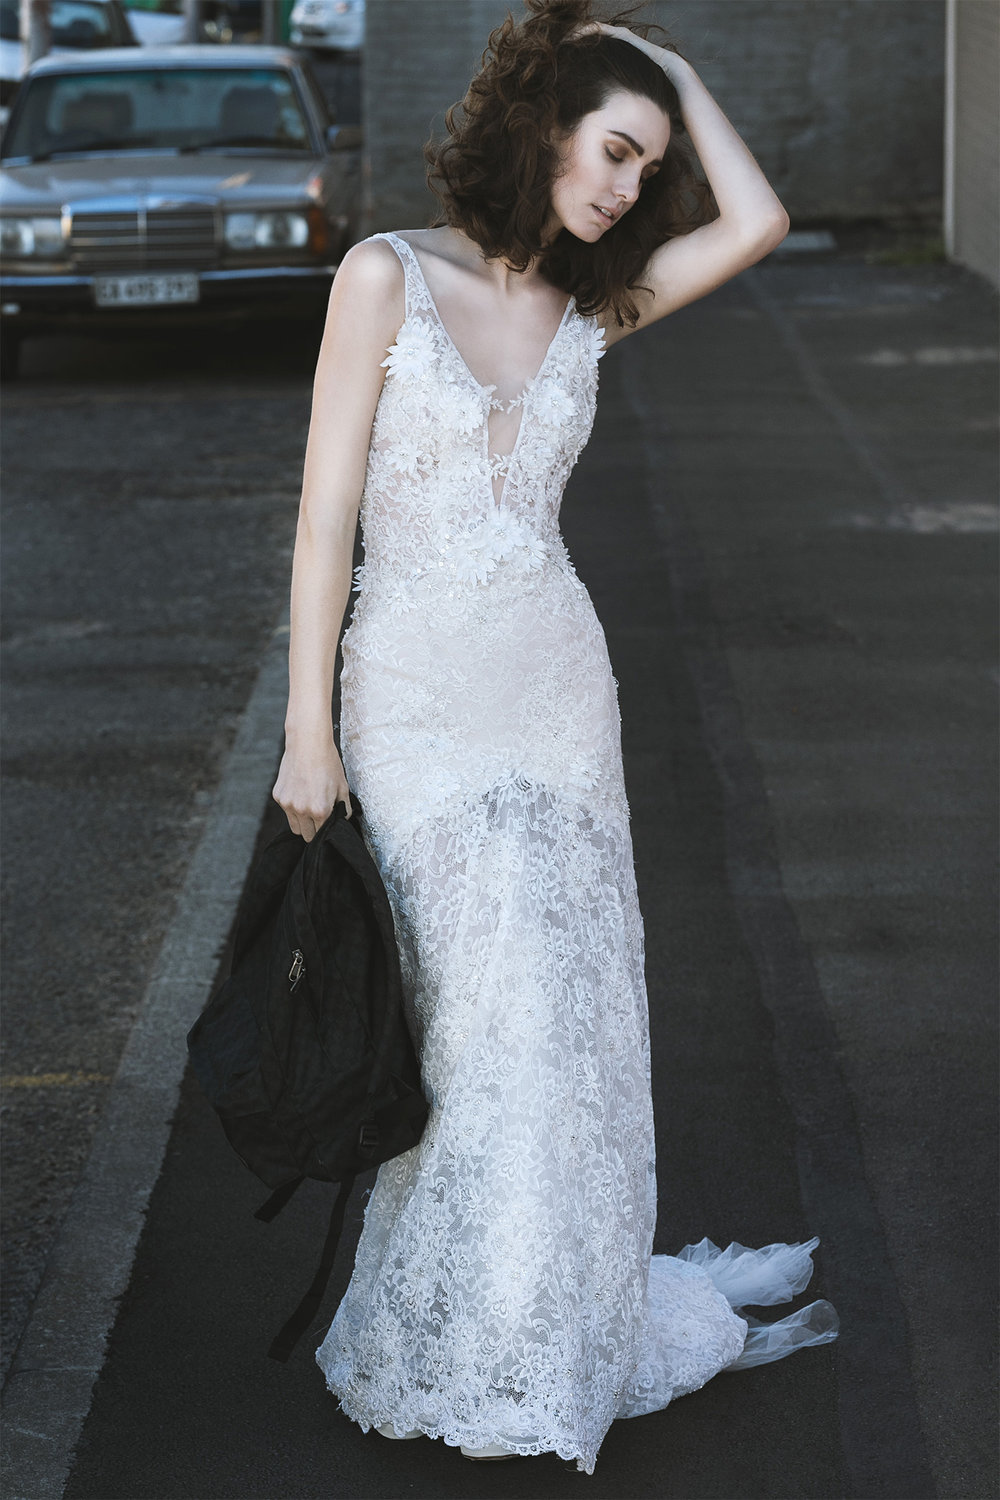 Vintage lace gown with 3D flowers and sheer low back, Cindy Bam; bag, Vans